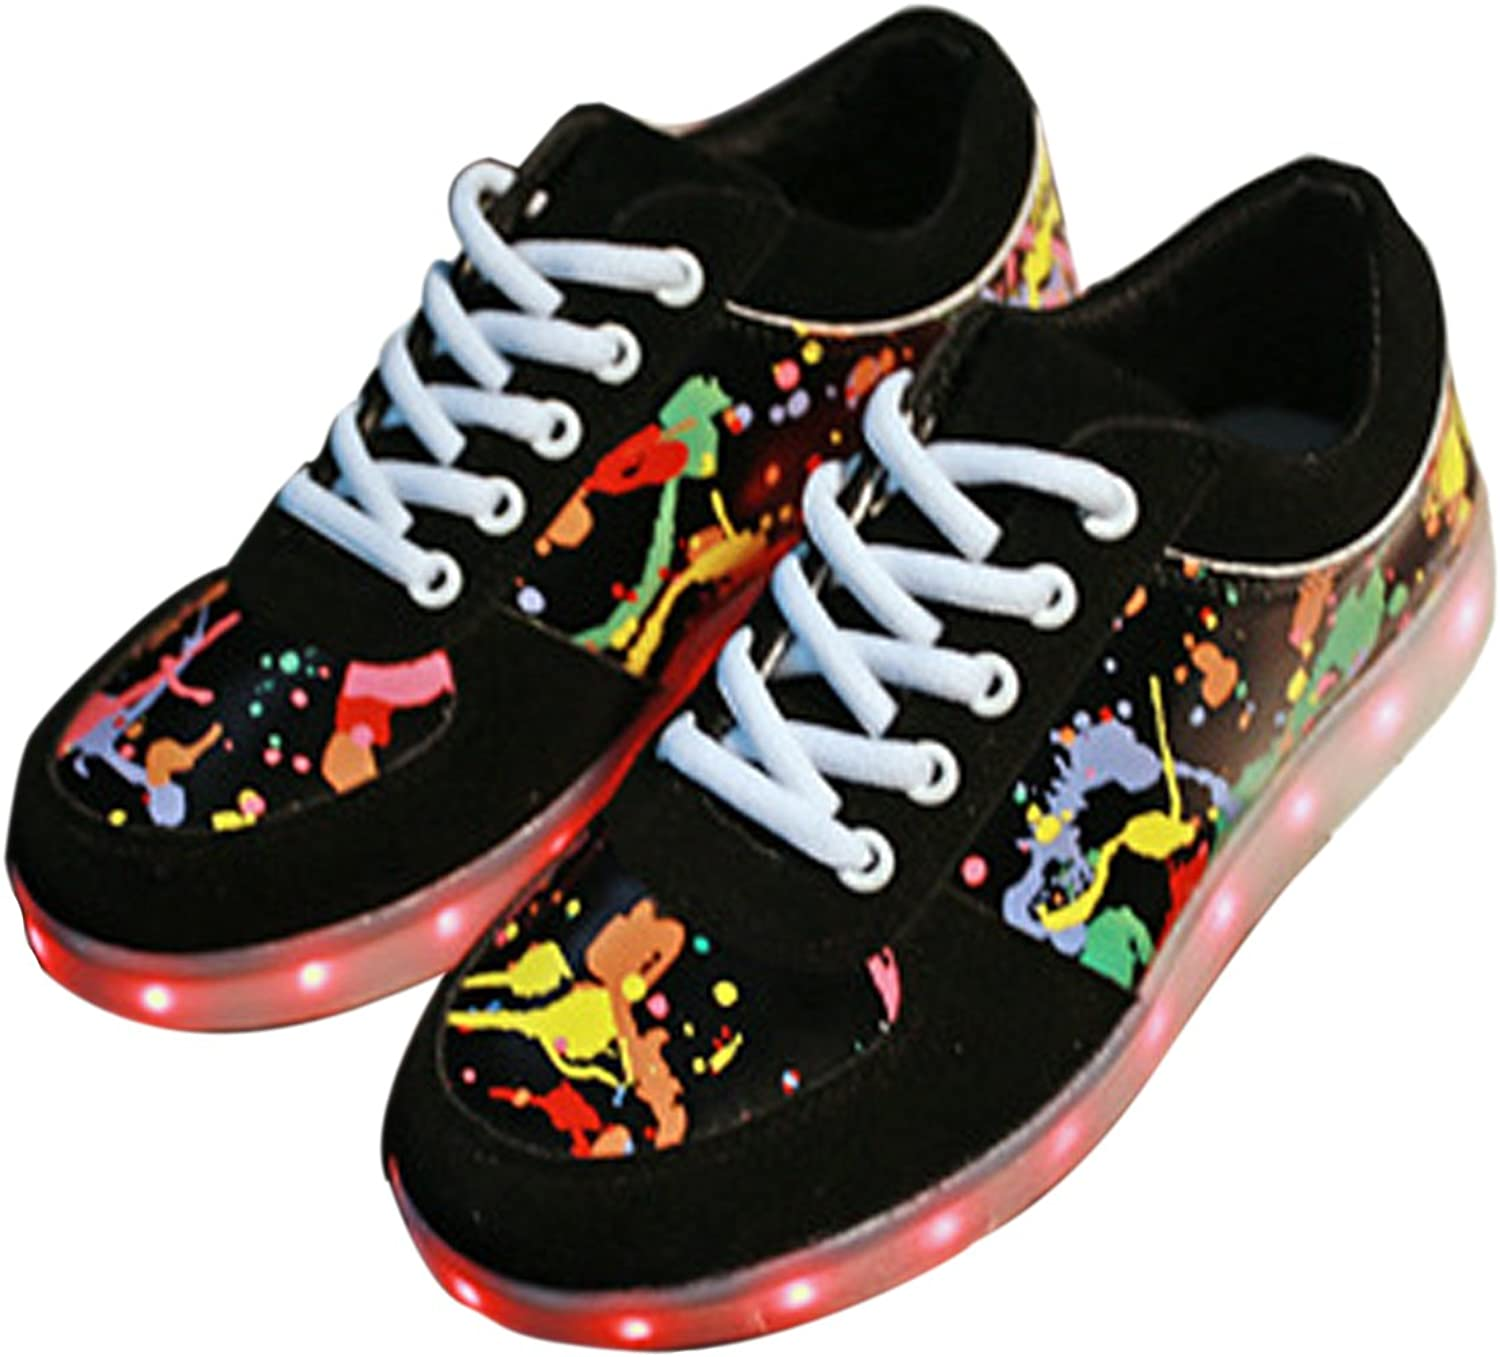 Univegrow Men and Women's colorful Light LED shoes Sports and Casual Graffiti